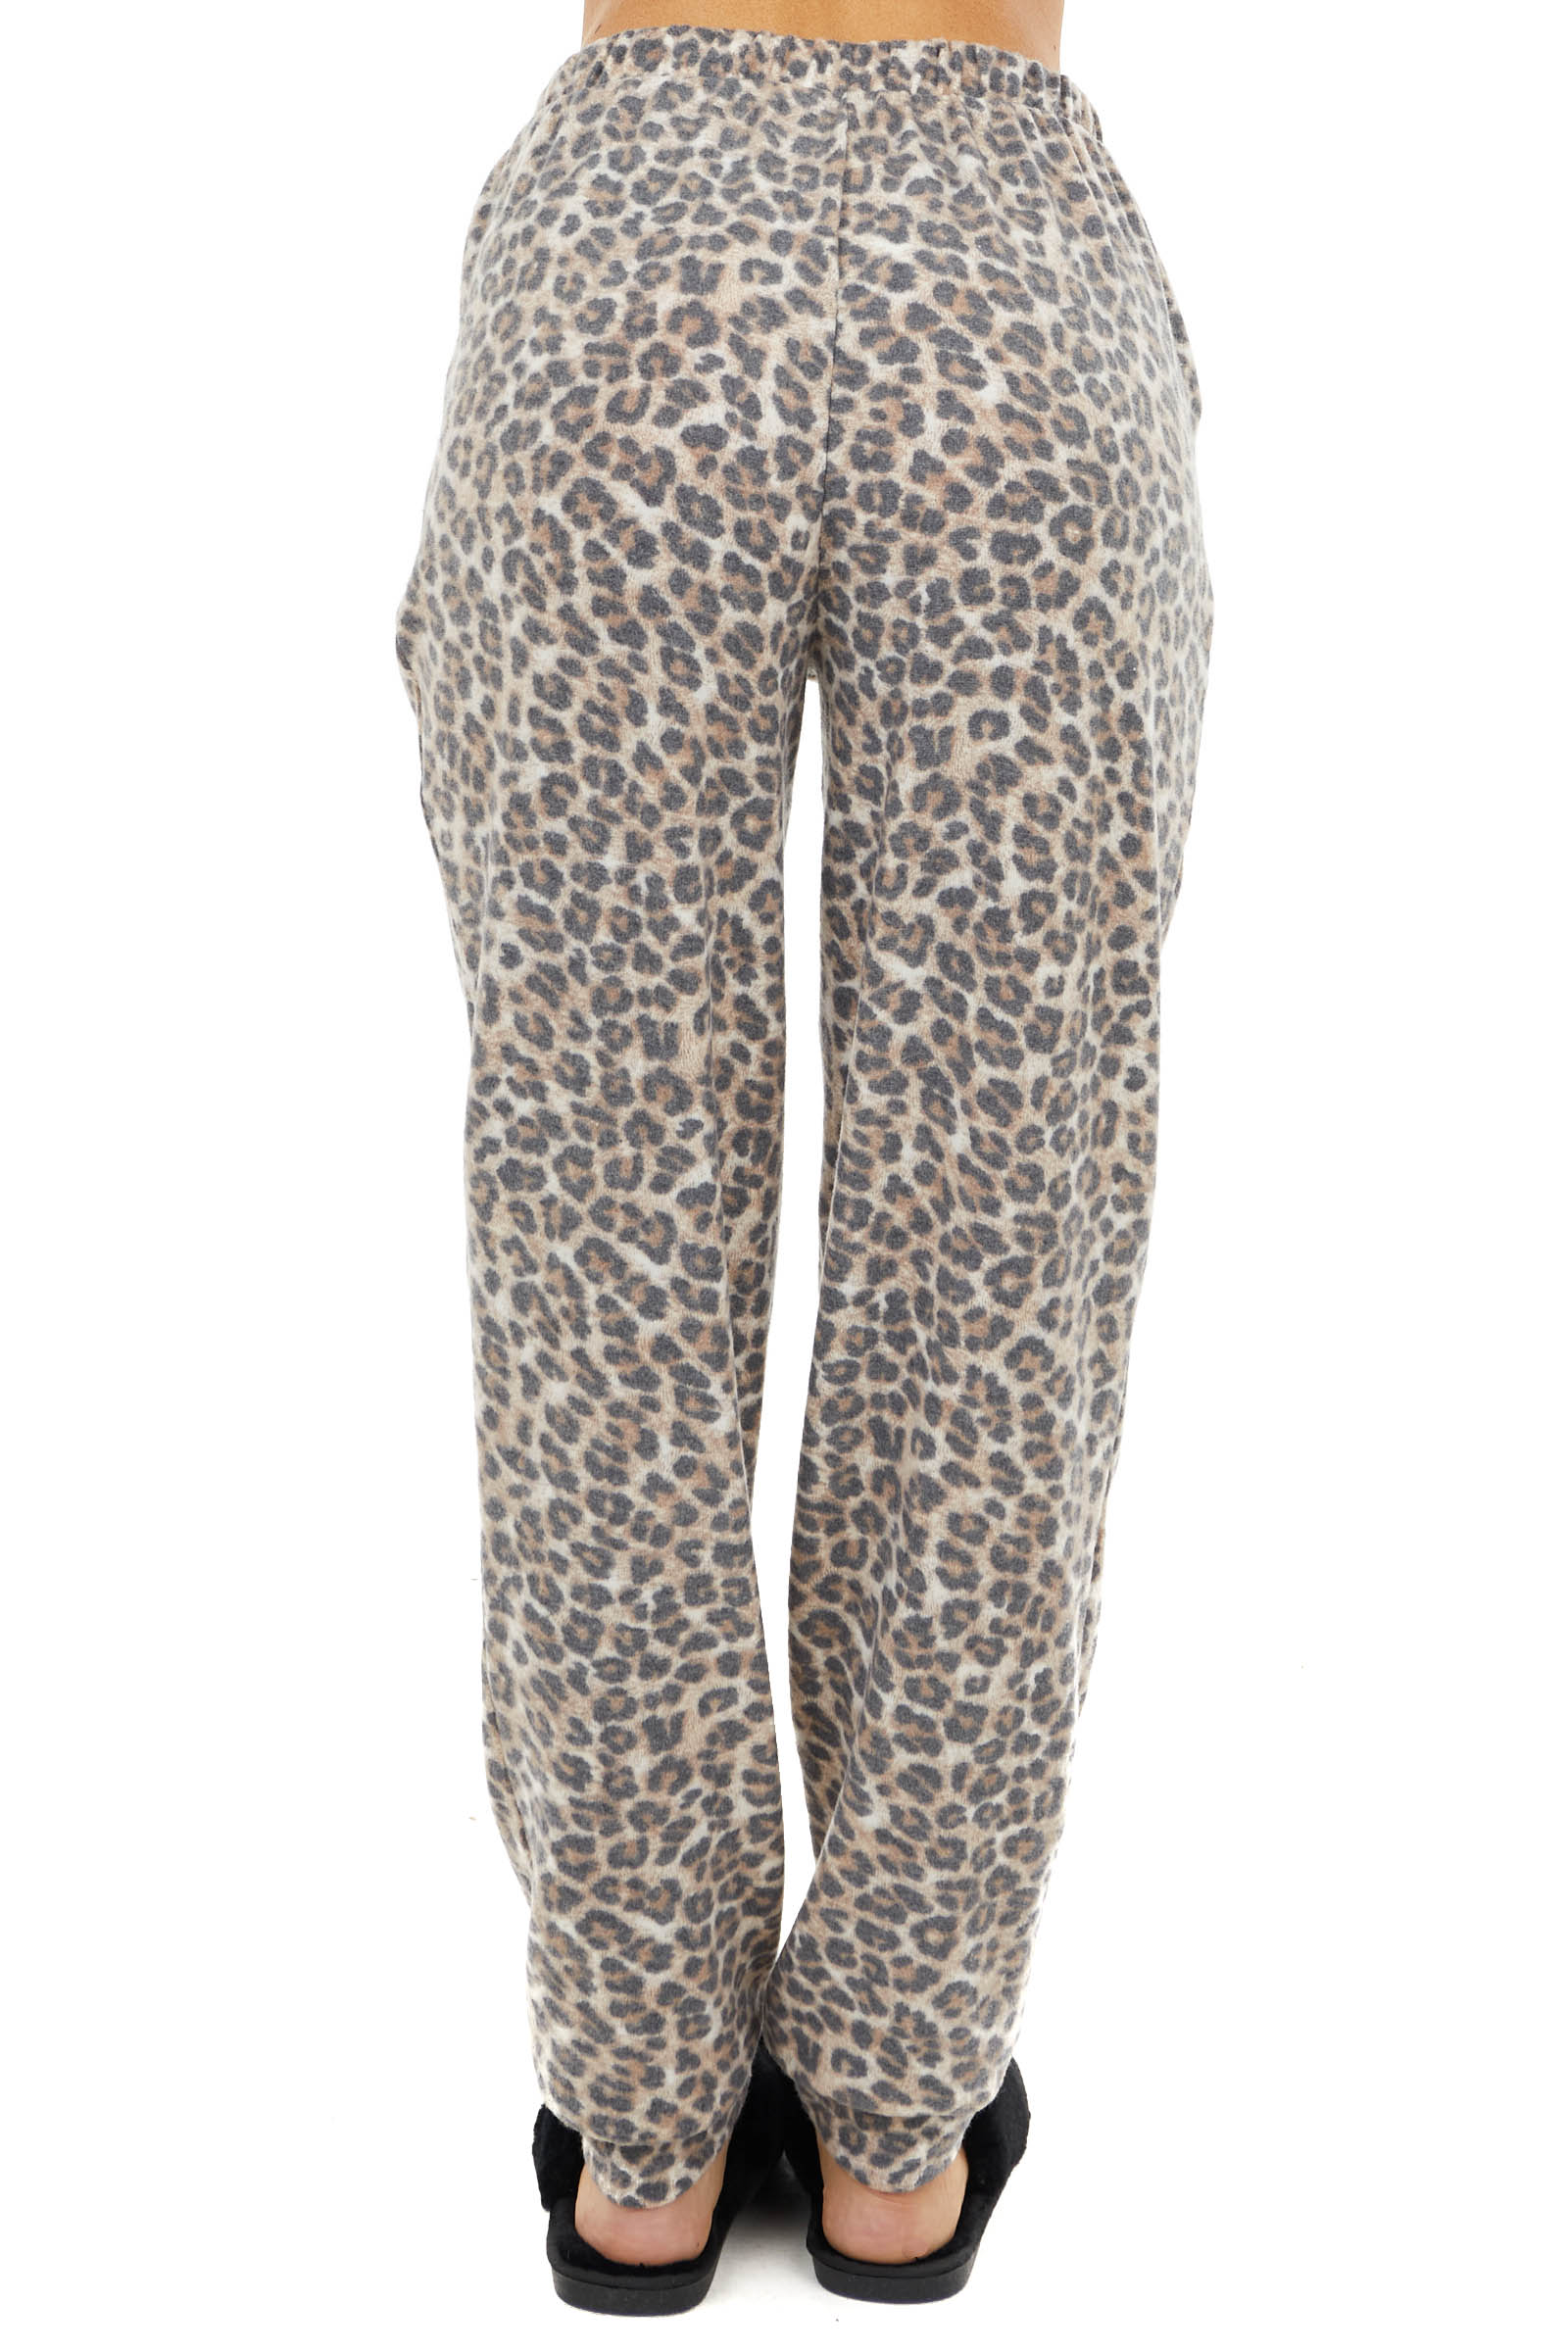 Beige and Charcoal Leopard Print Knit Jogger with Pockets